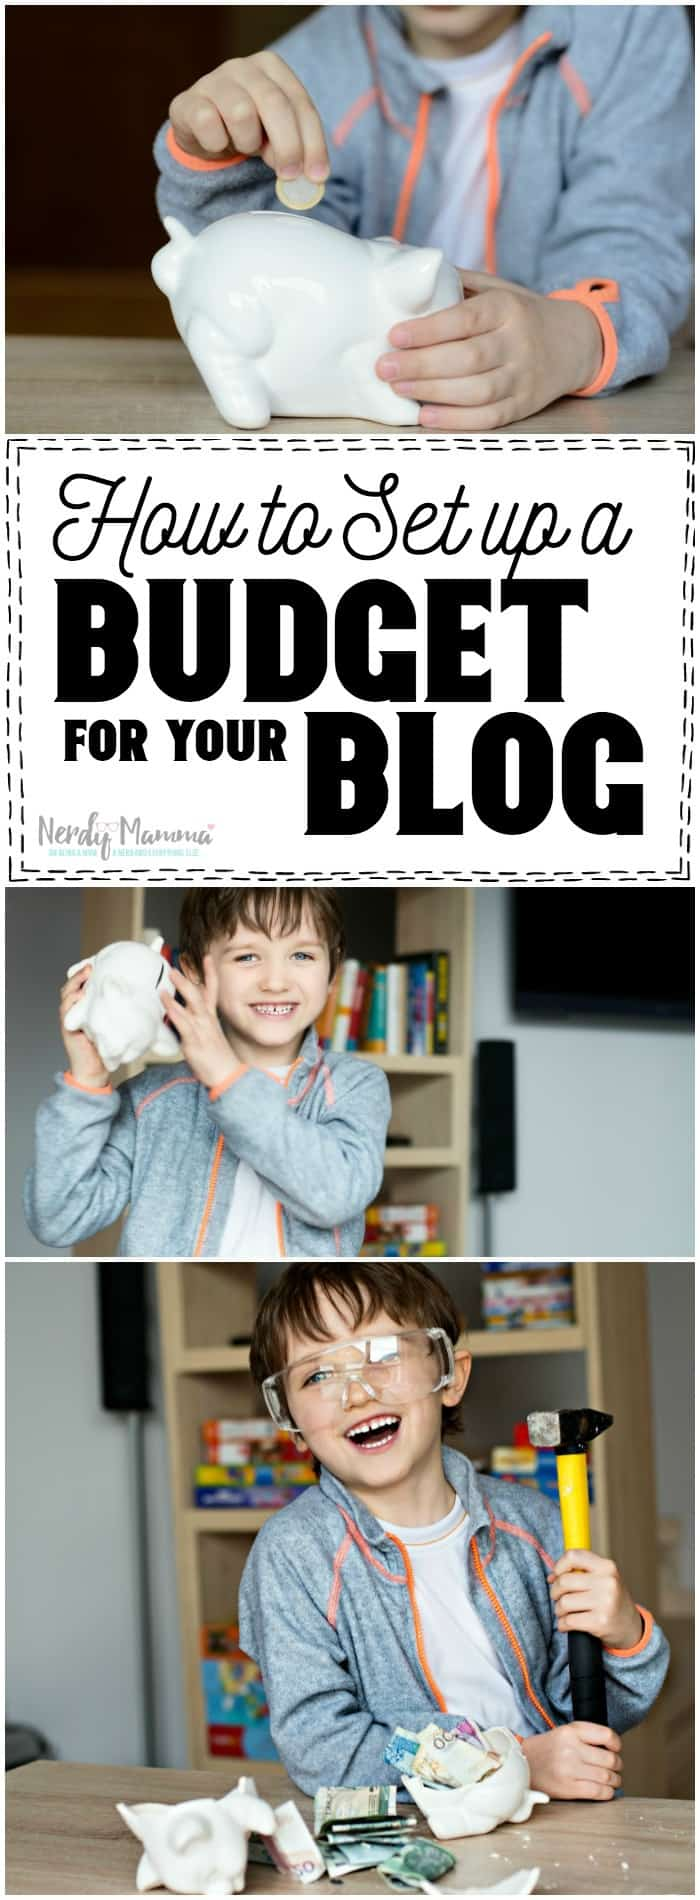 These are such simple tips for setting up a budget for your blog! I wish I'd done this before.